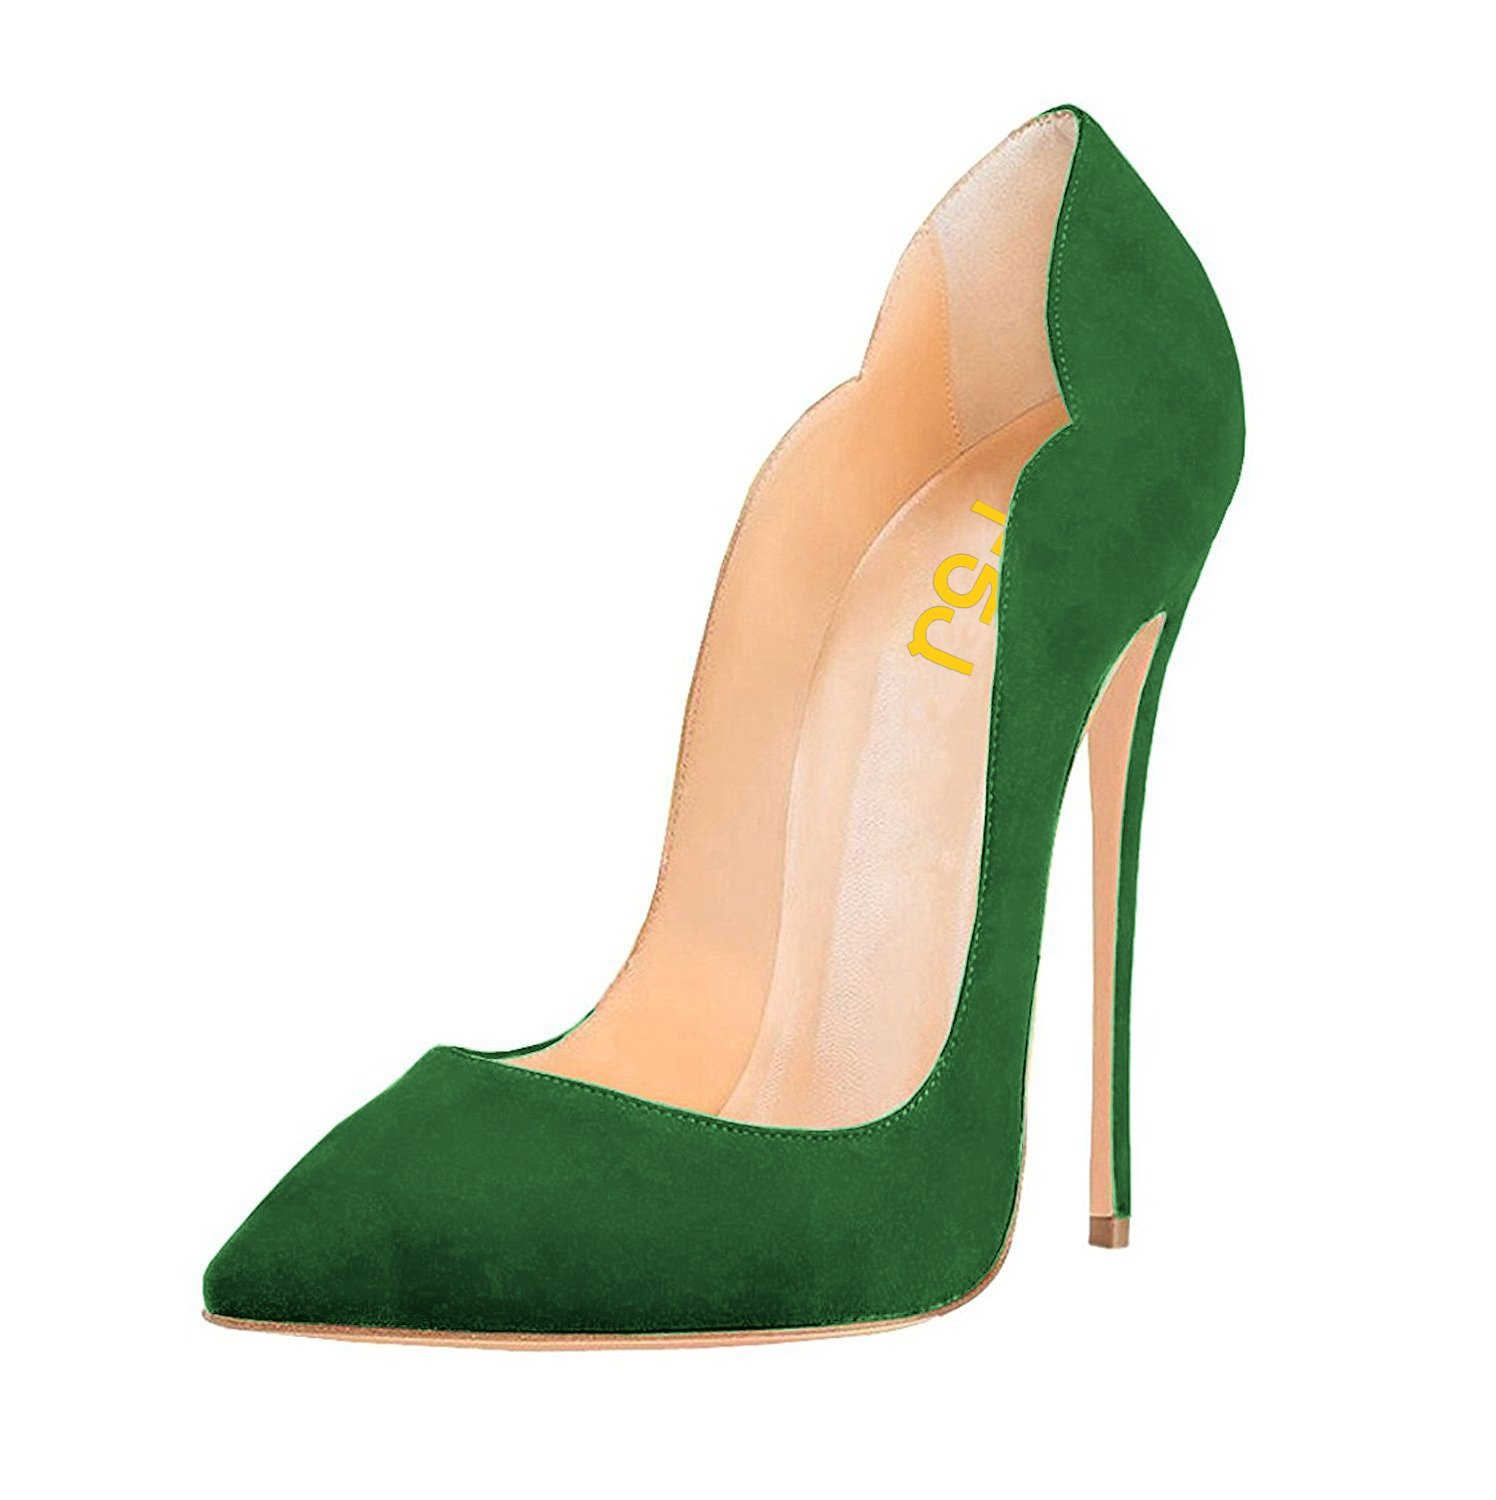 FSJ Women Classic Pointed Toe High Heels Sexy Stiletto Pumps Office Lady Dress Shoes Size 4-15 US B077T6ZR7H 8.5 B(M) US|Green-suede